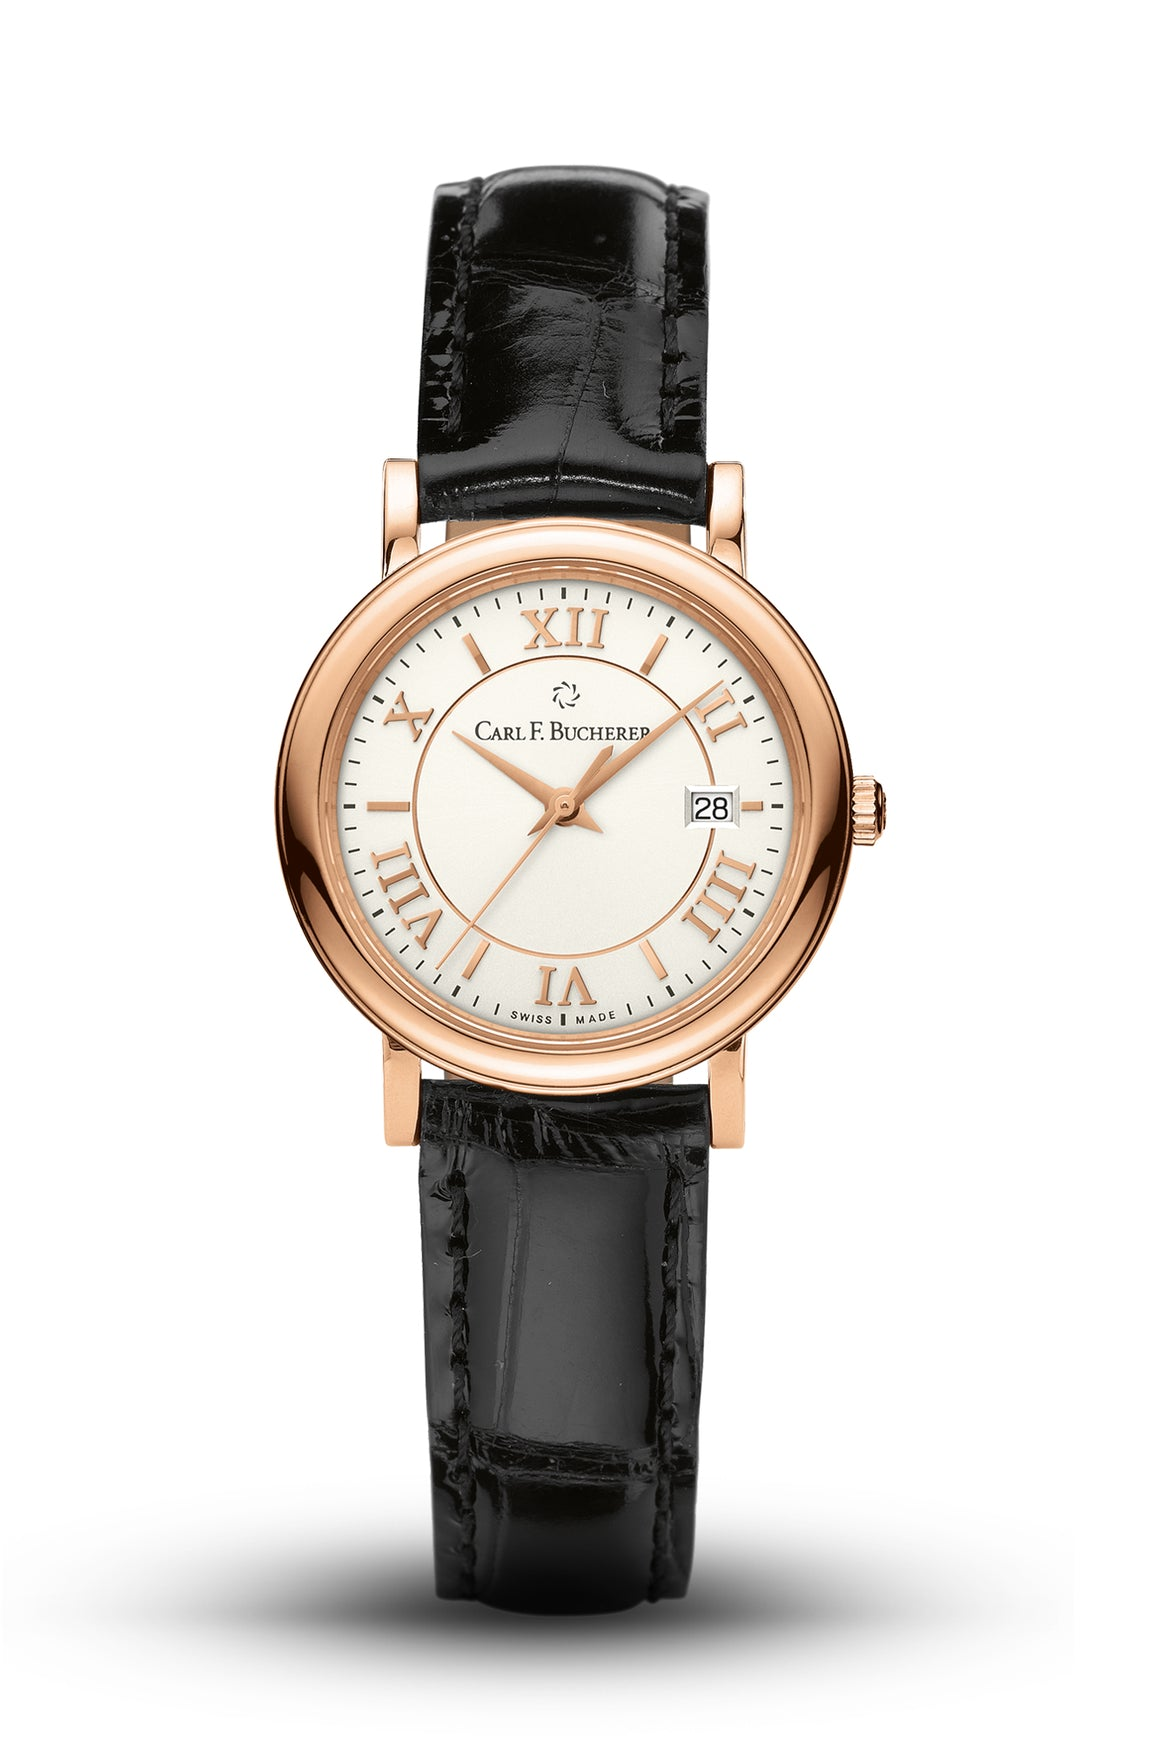 C.F. BUCHERER ADAMAVI WATCH